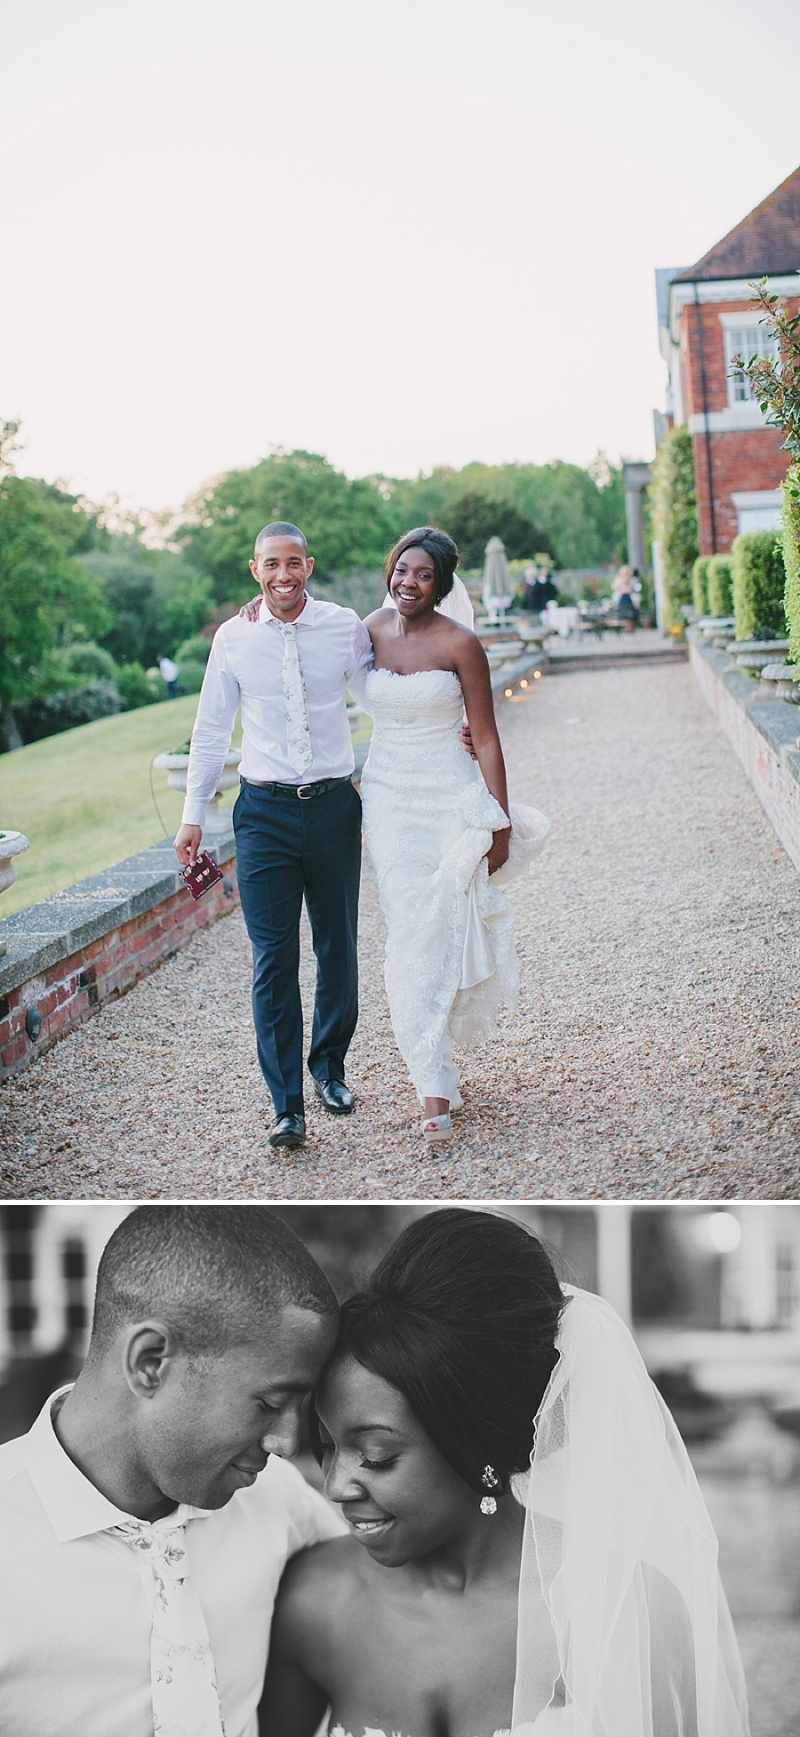 An Elegant Wedding In Dorset With Lilac Accents Bride In Dietrich By Pronovias With Vita By Jimmy Choo Sandals And Bridesmaids In Silver And Lilac Ghost Dresses Images By Hayley Savage_0013